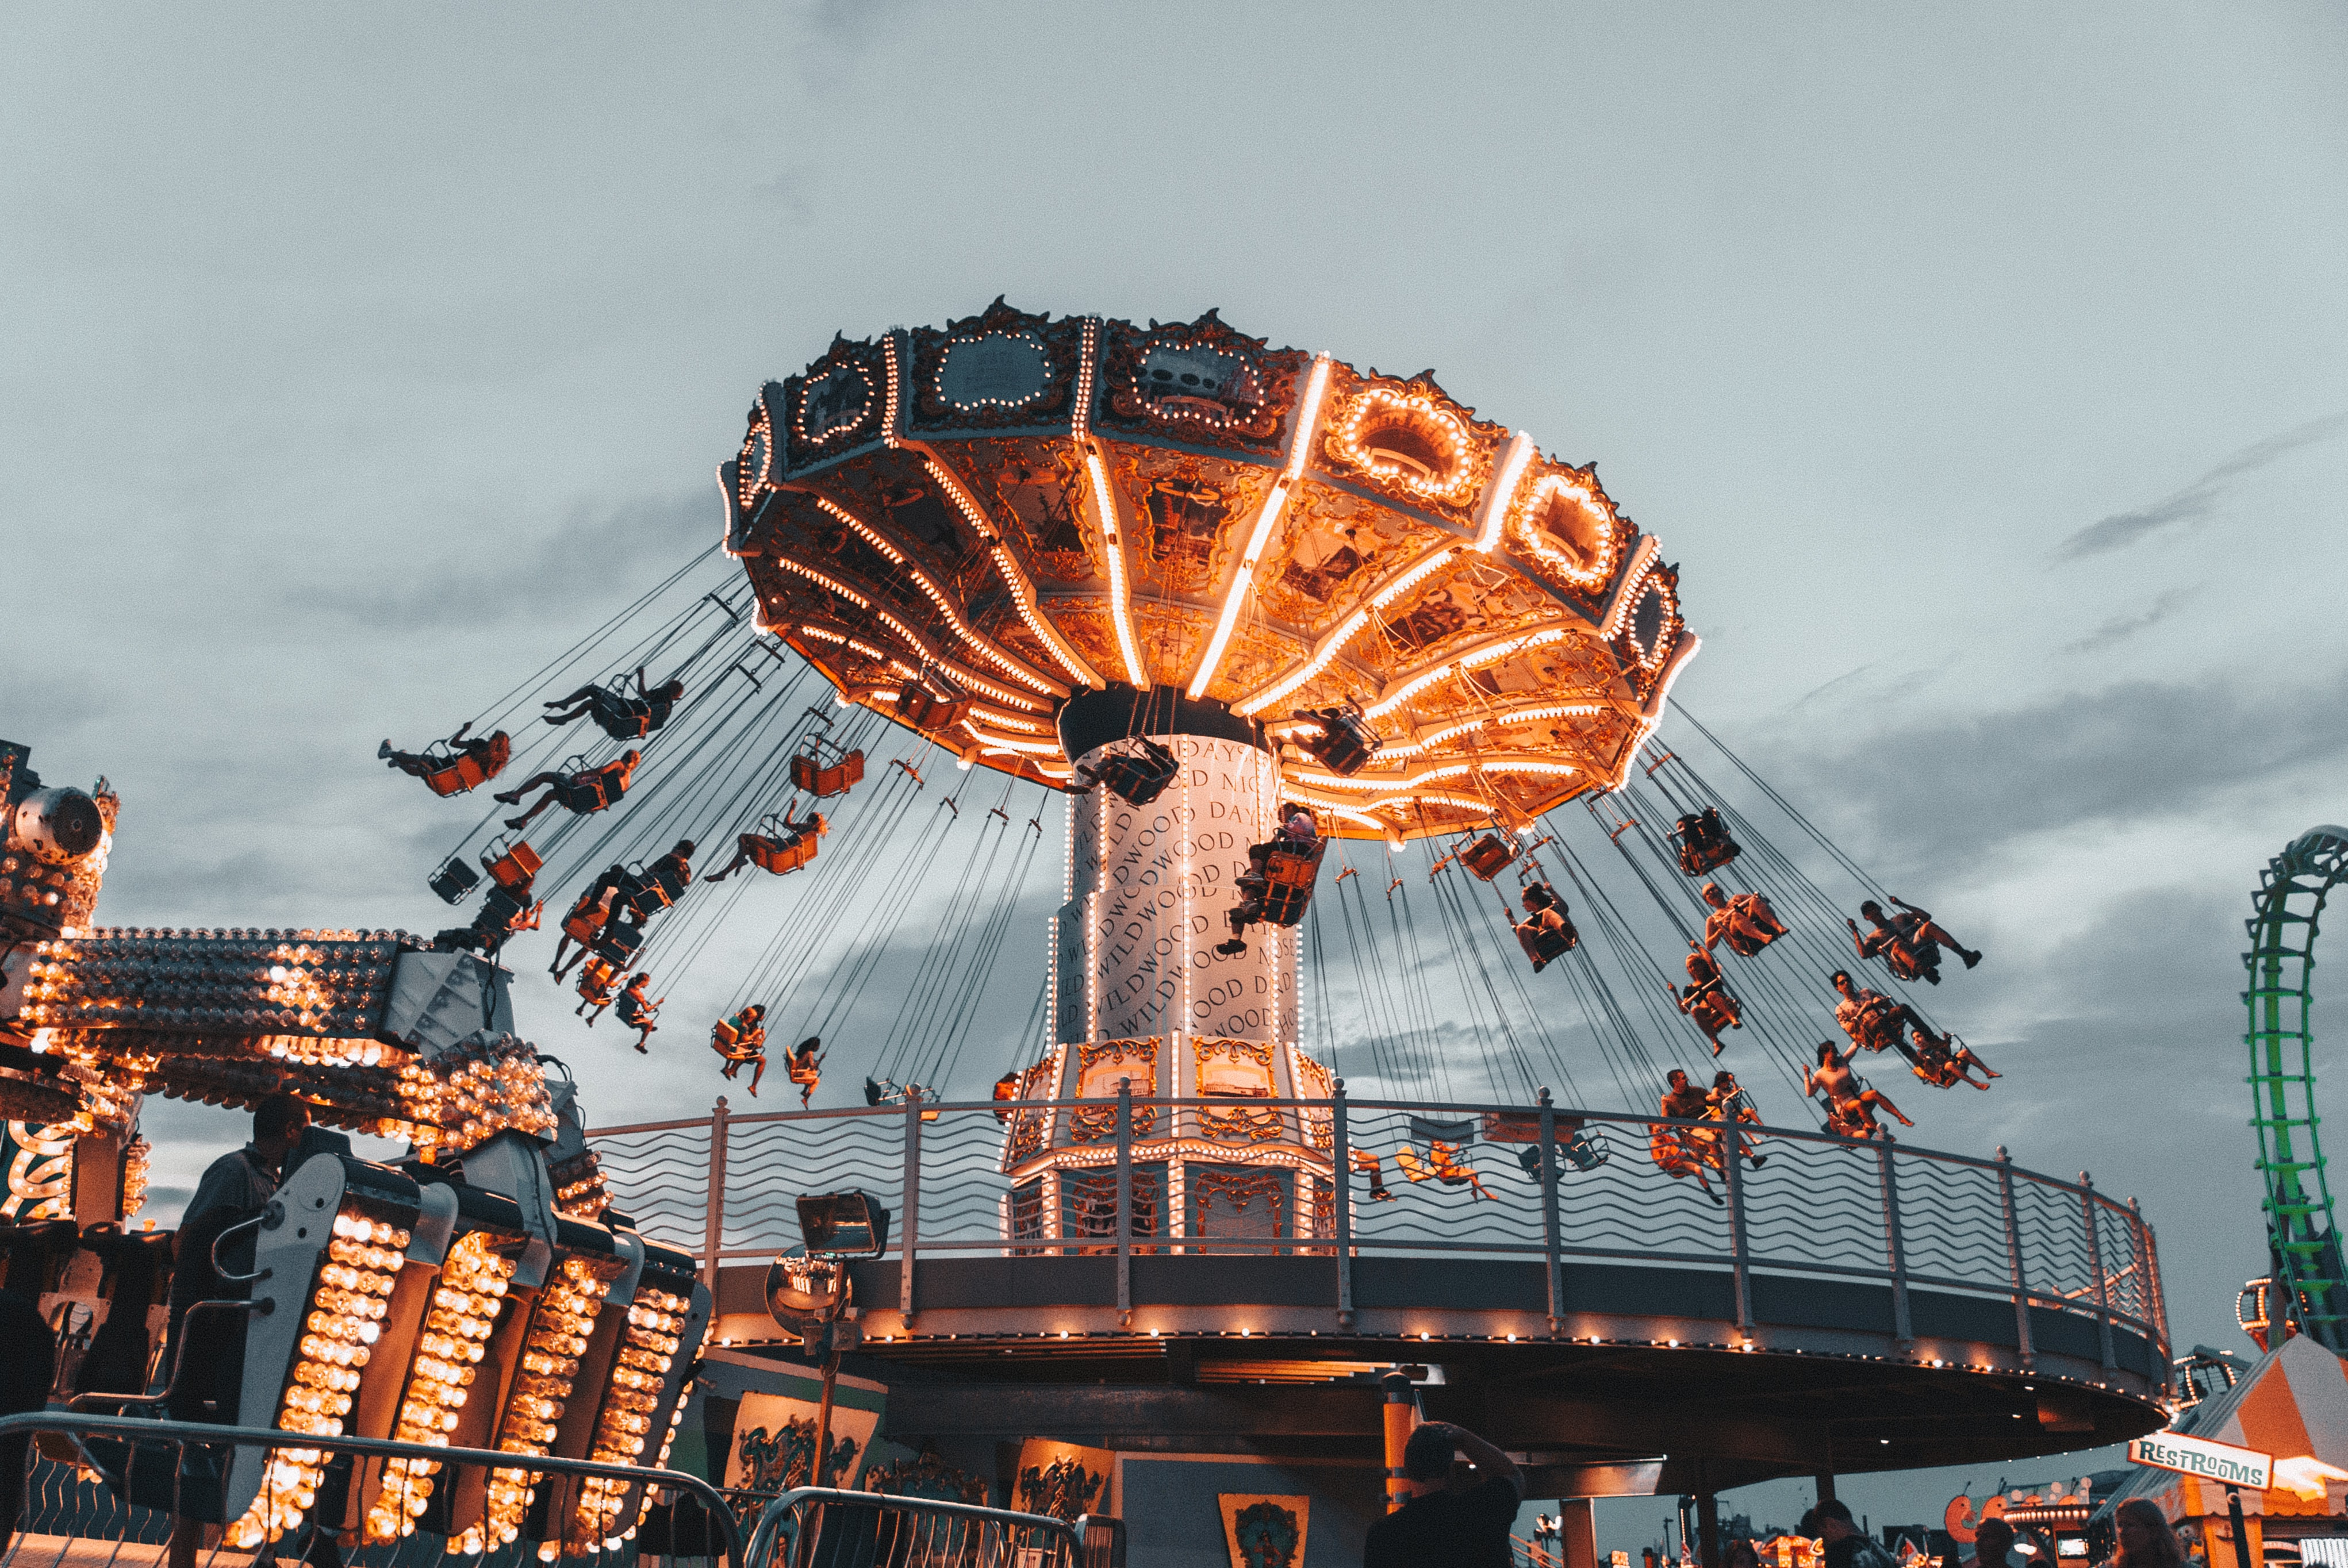 Wildwood fairgoers suspended in the air on an operating swing ride as others watch on